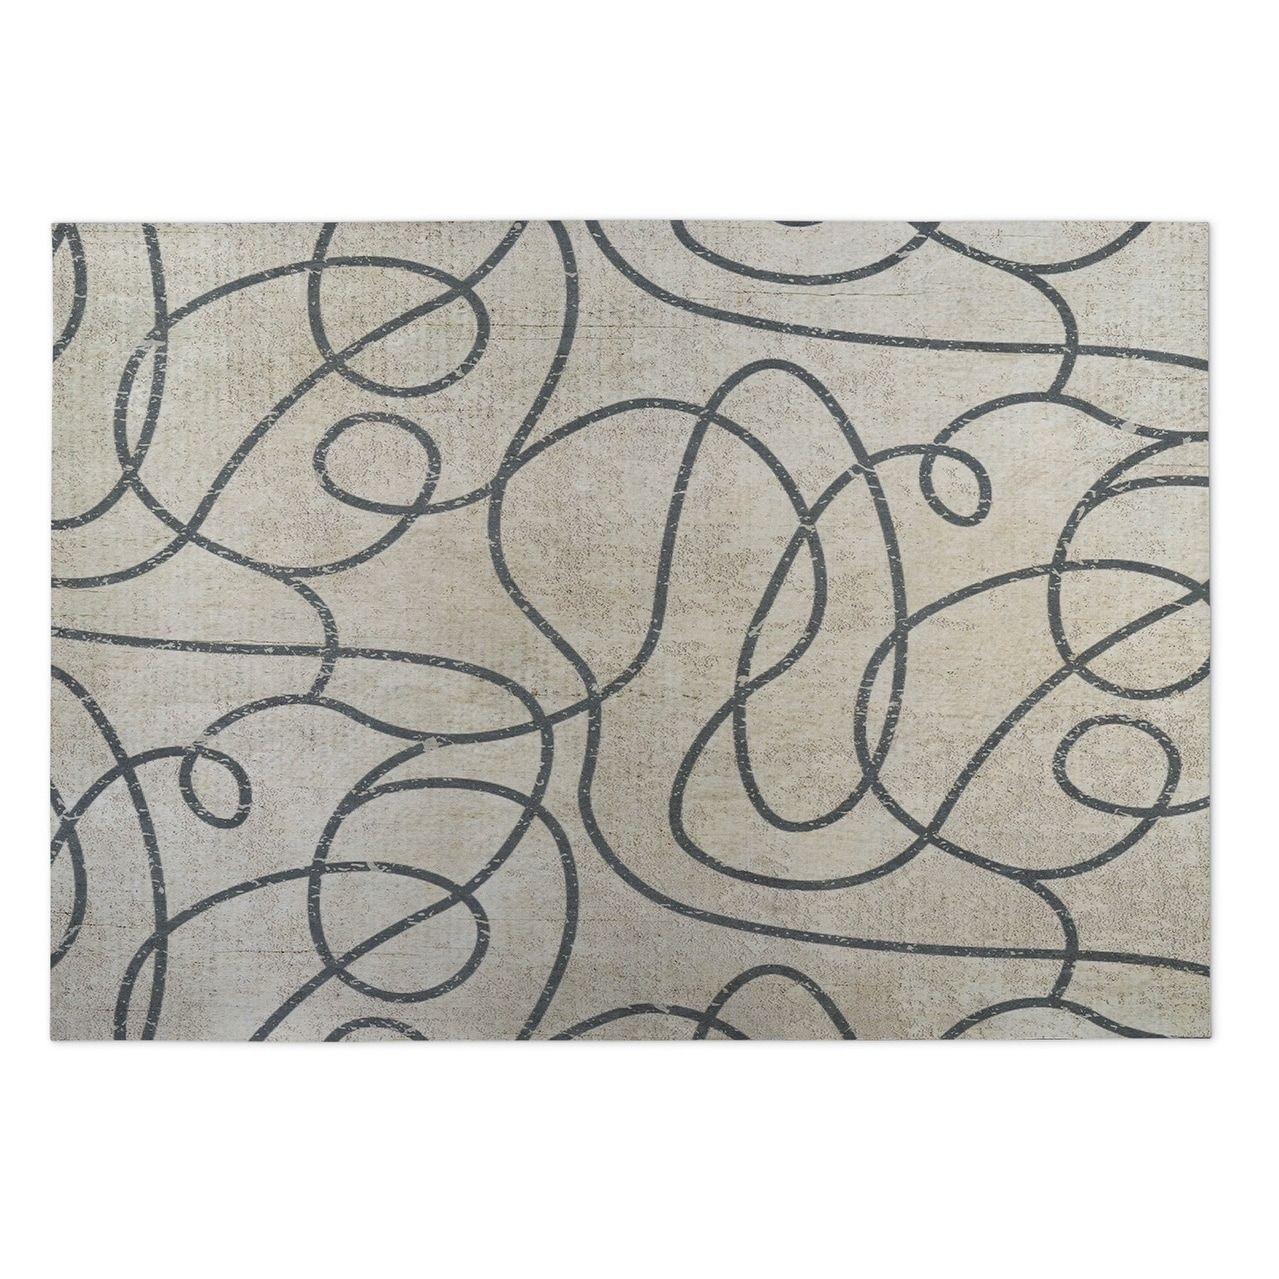 Shop Kavka Designs Tan Grey Connecting Vines Indoor Outdoor Floor